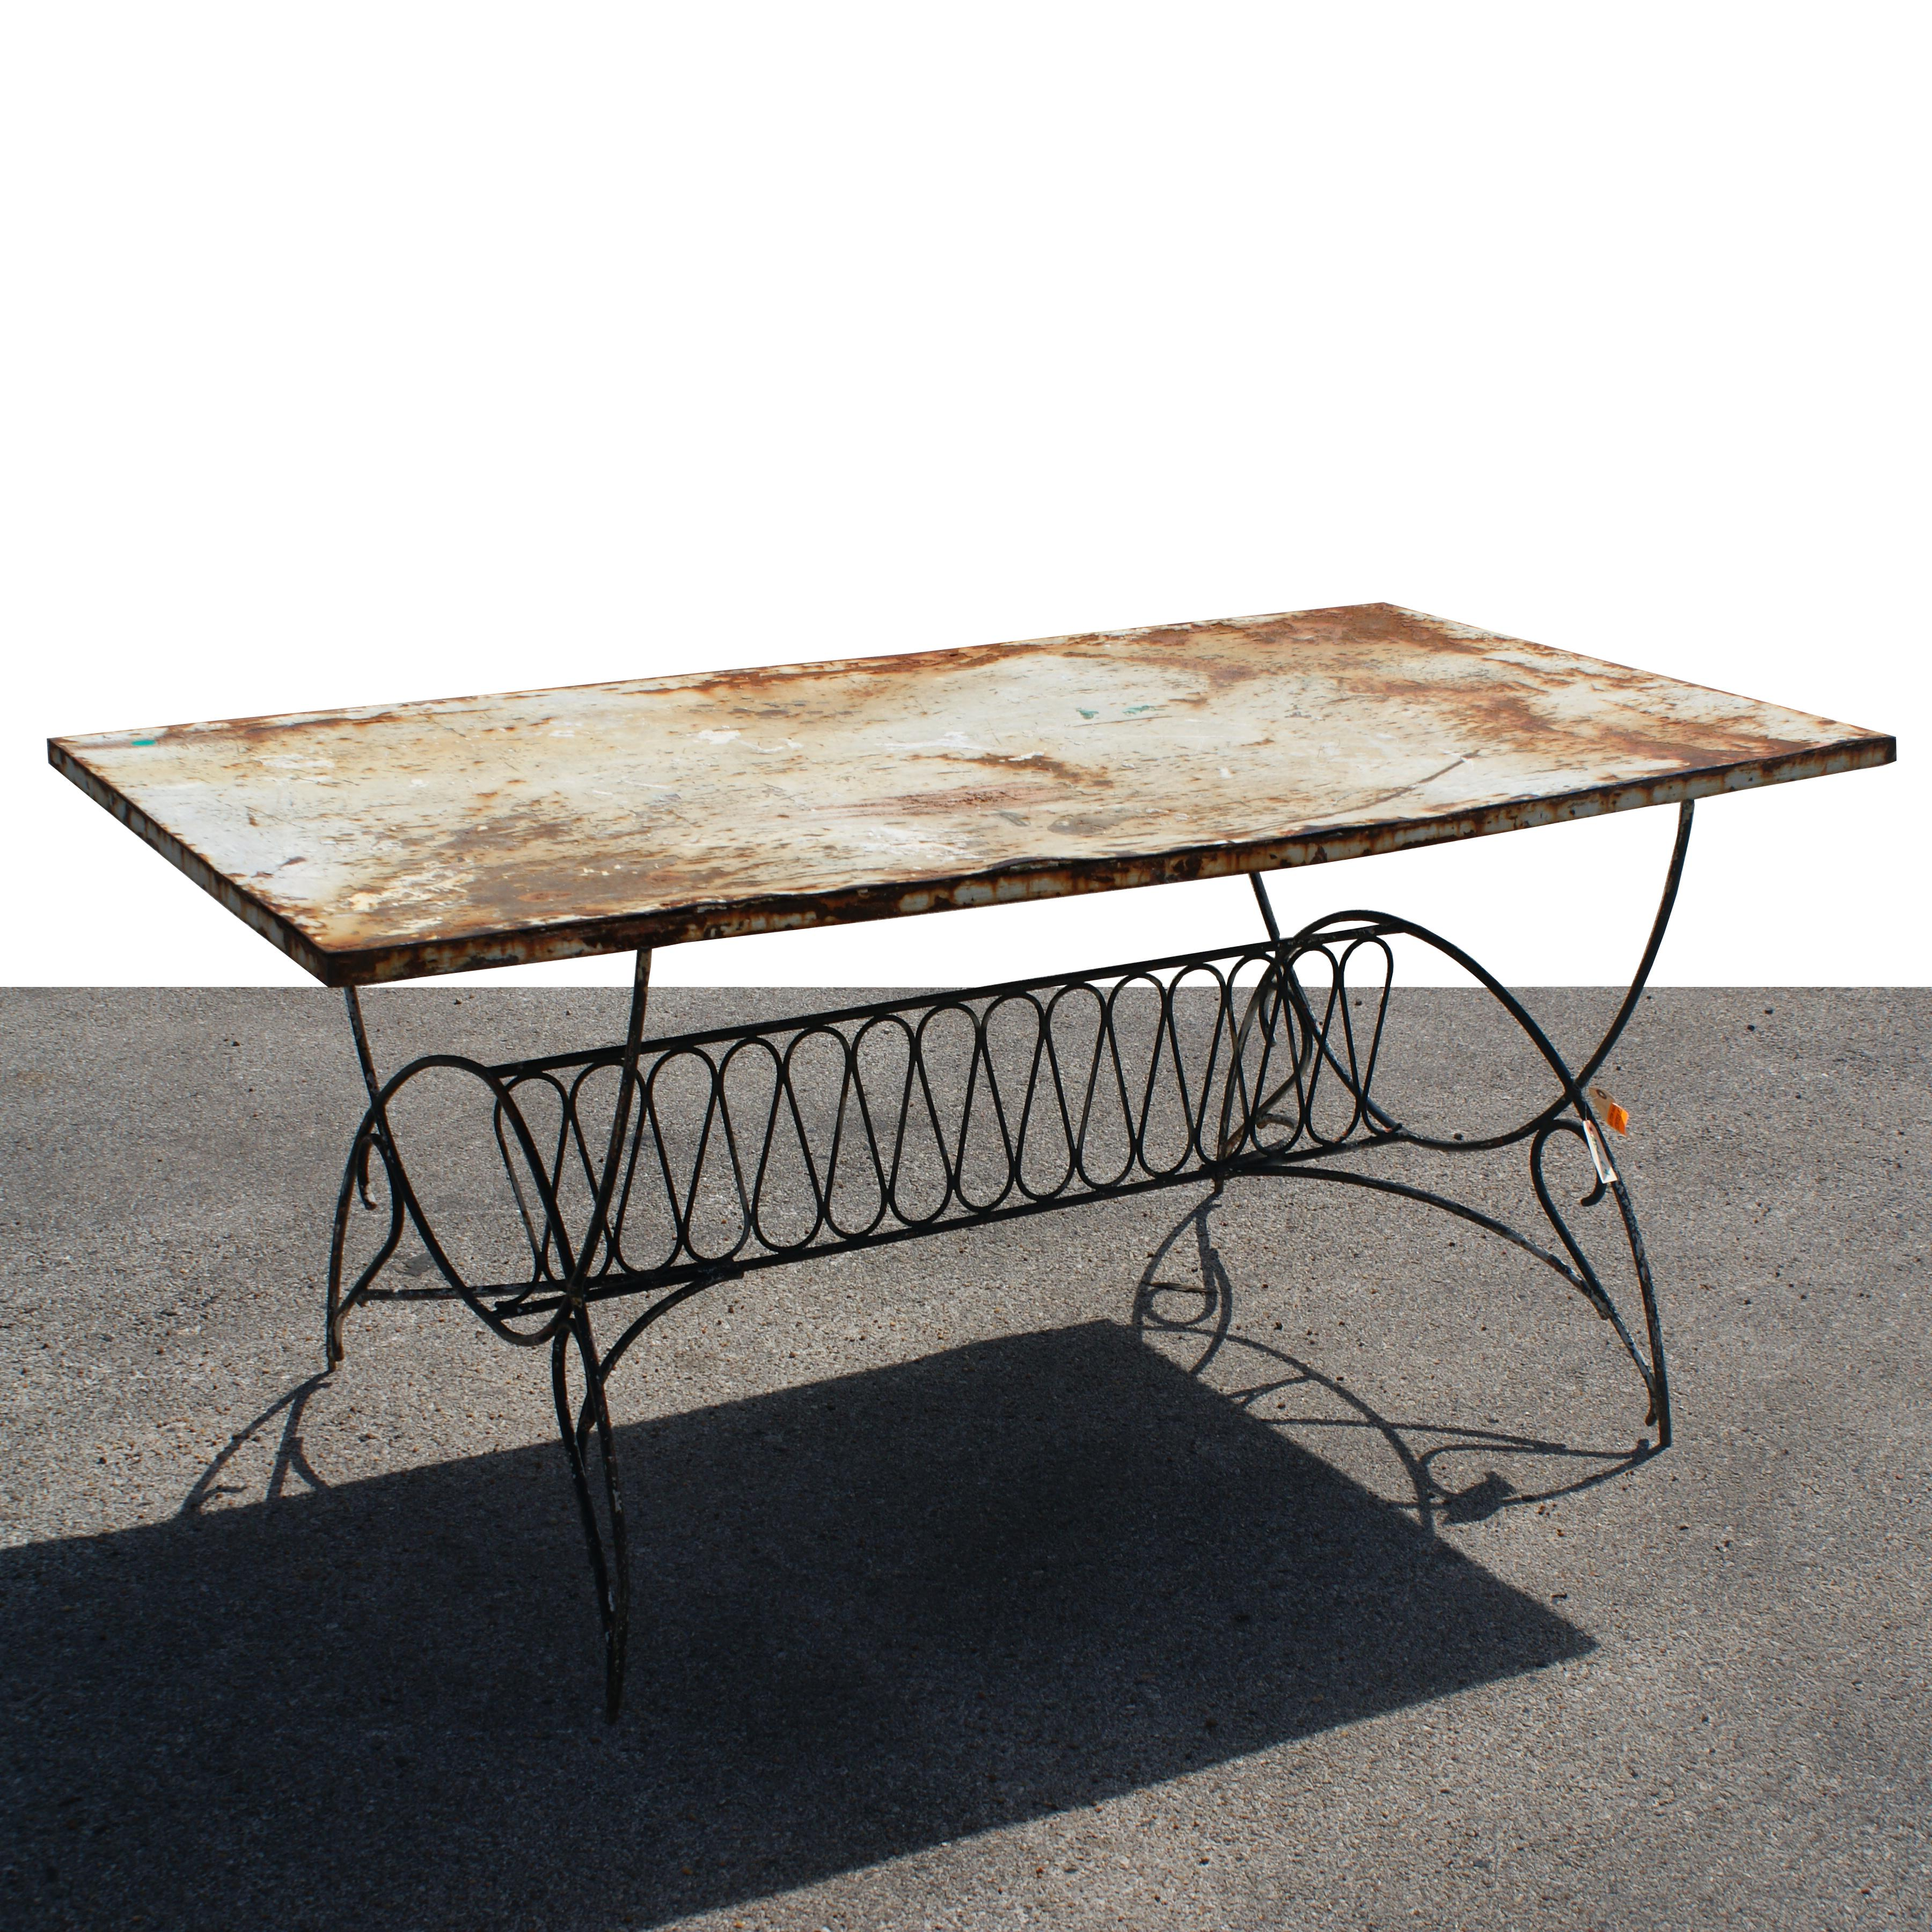 Art deco metal outdoor patio dining table for sale at 1stdibs